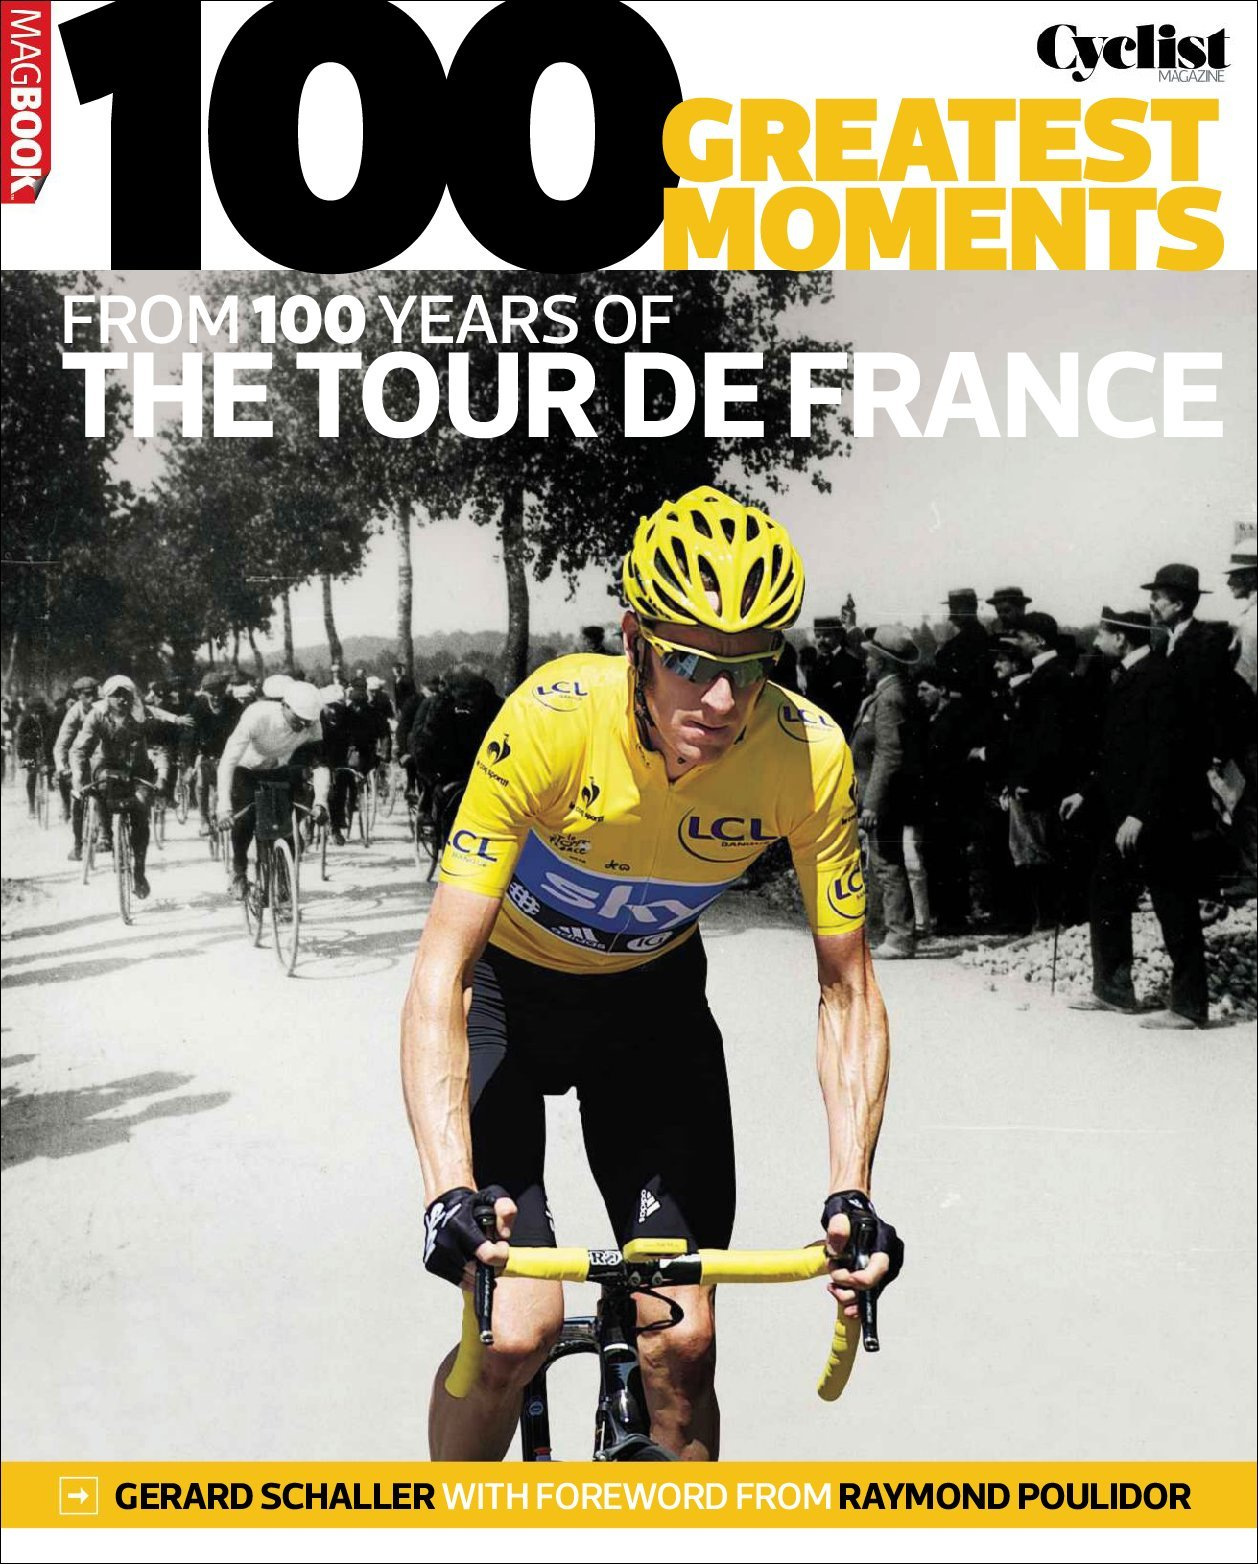 100 greatest moments from 100 years of the Tour De France Digital